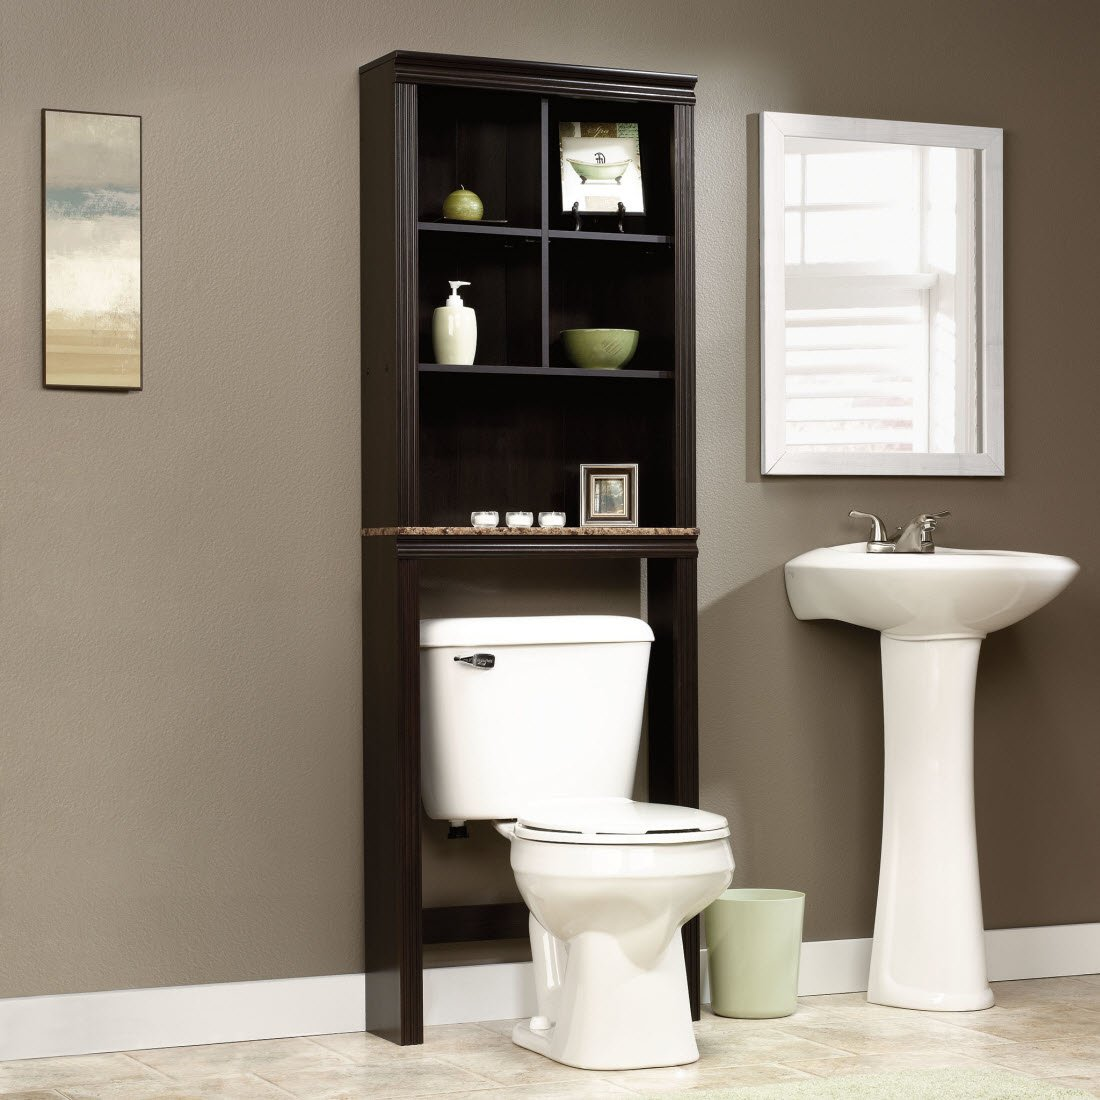 Amazon.com: Over the Toilet Cabinet with Open Shelves: Kitchen & Dining